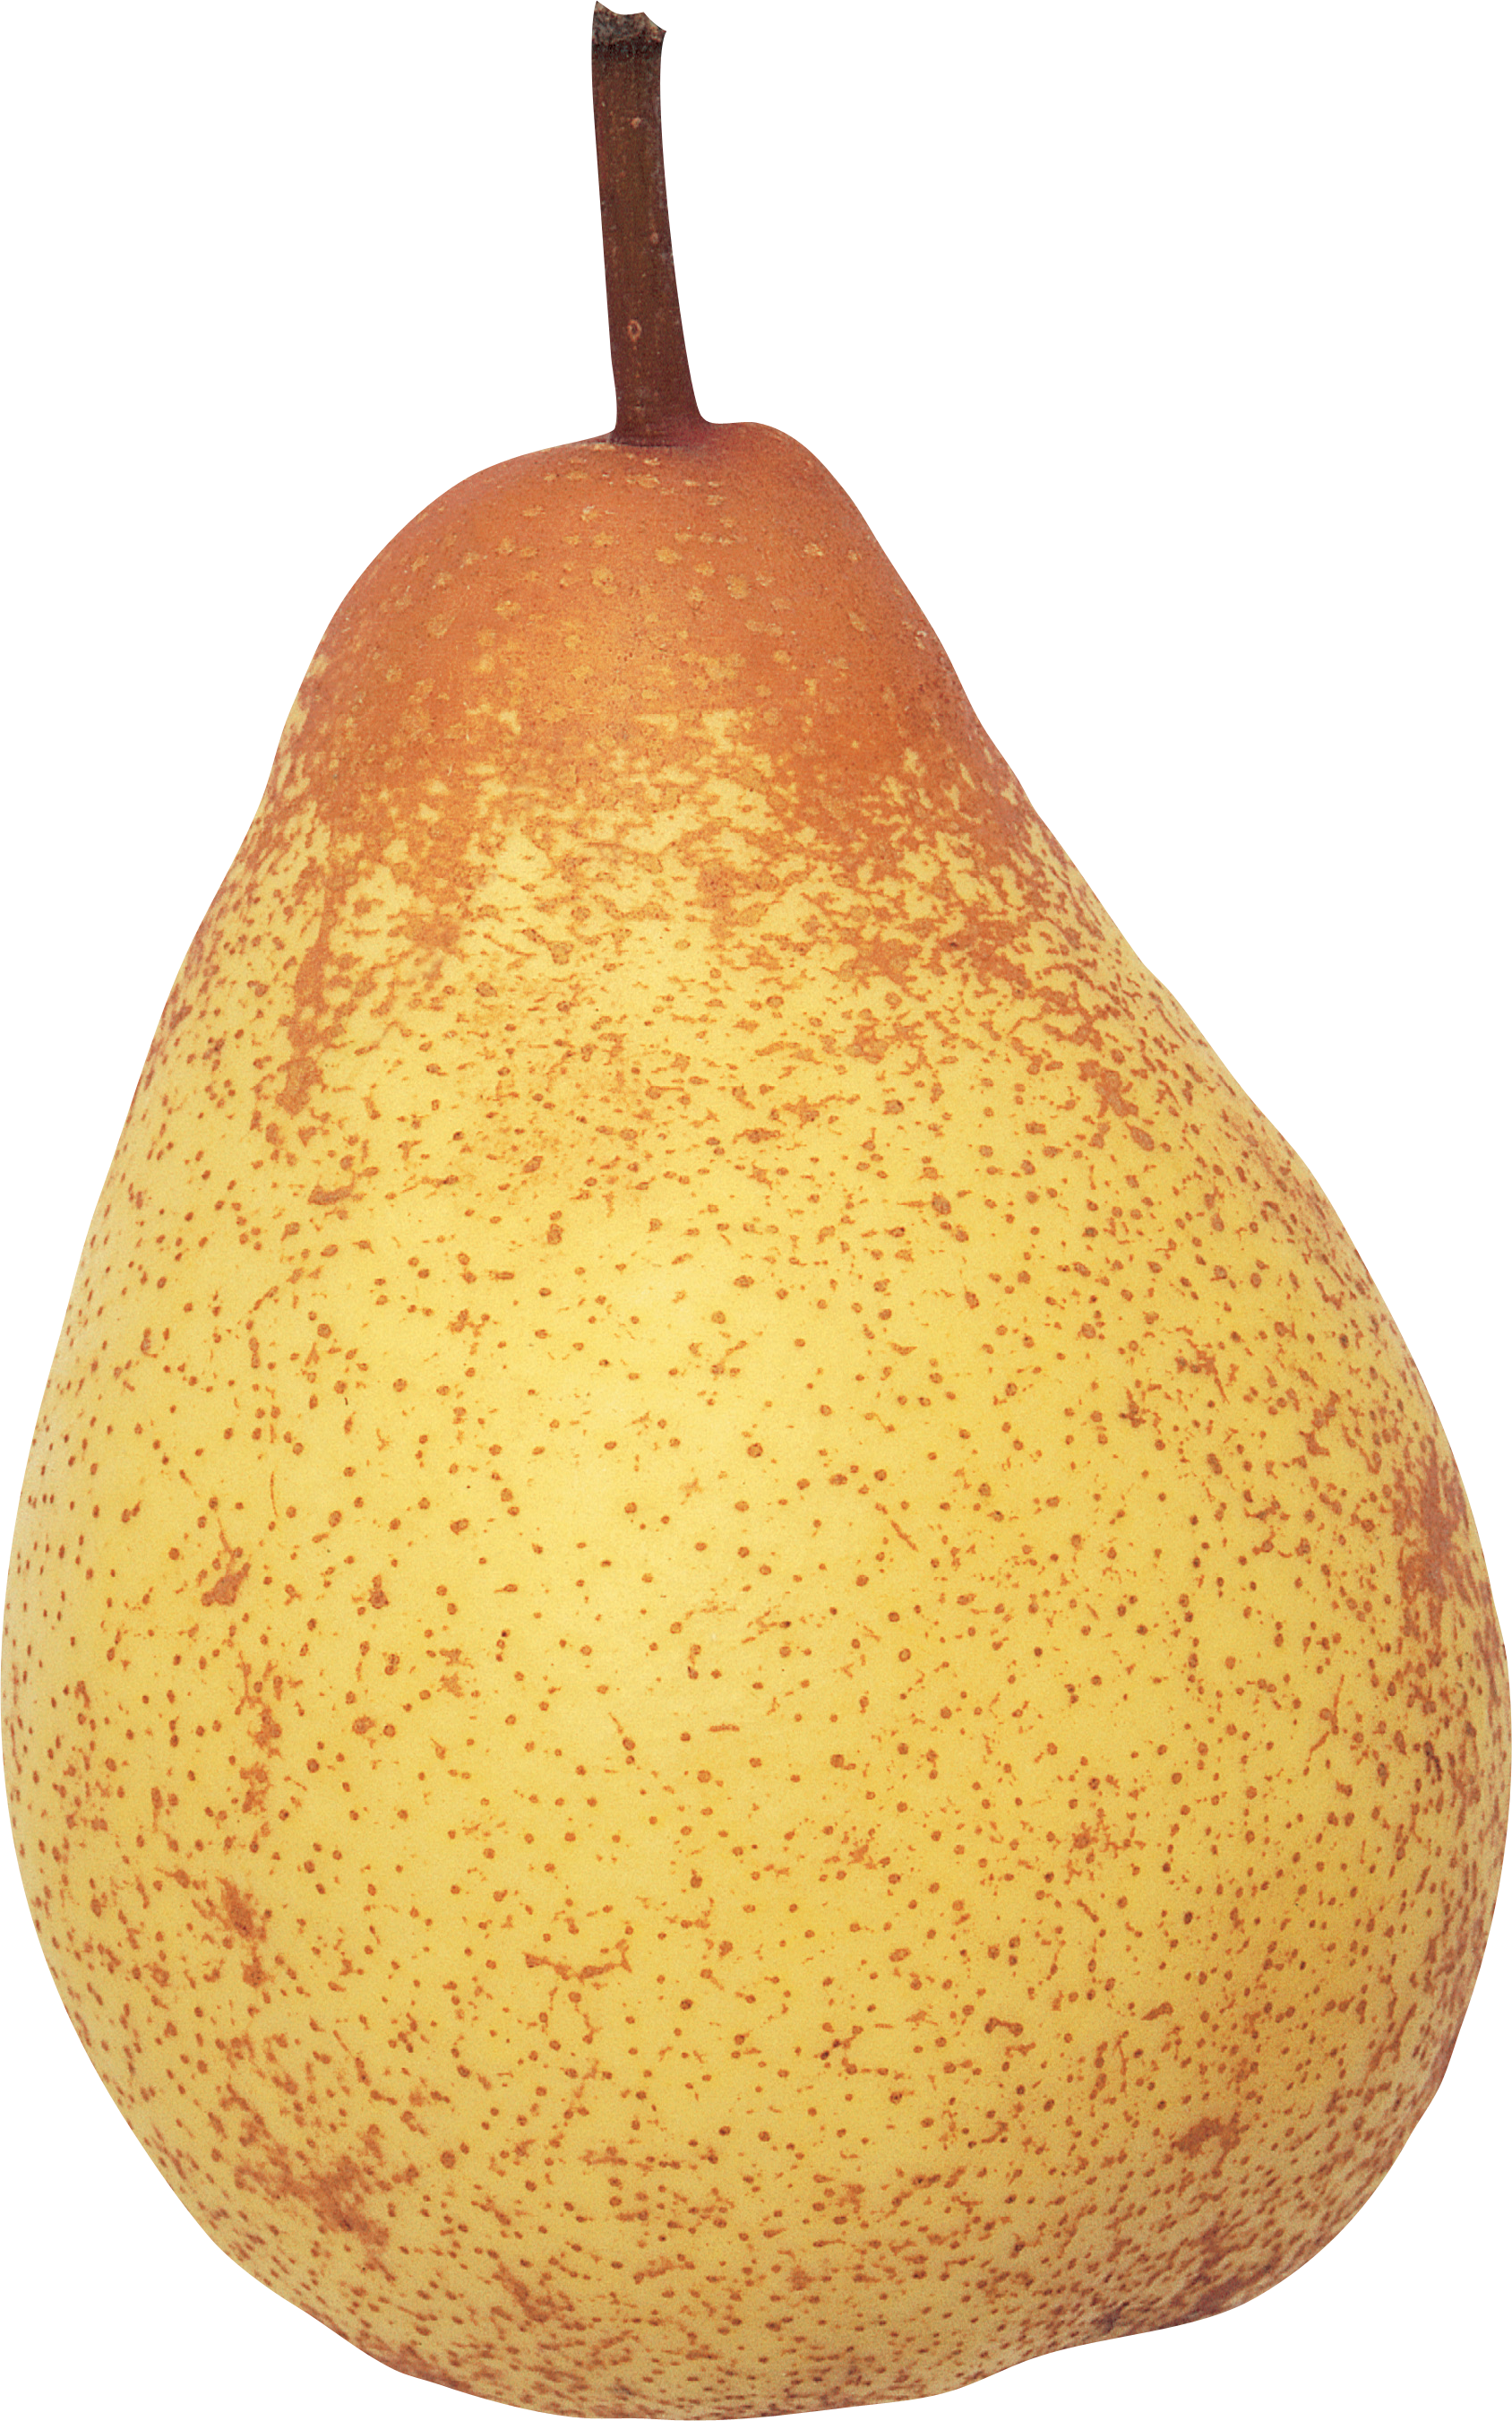 Pear clipart apple pear. Png image purepng free